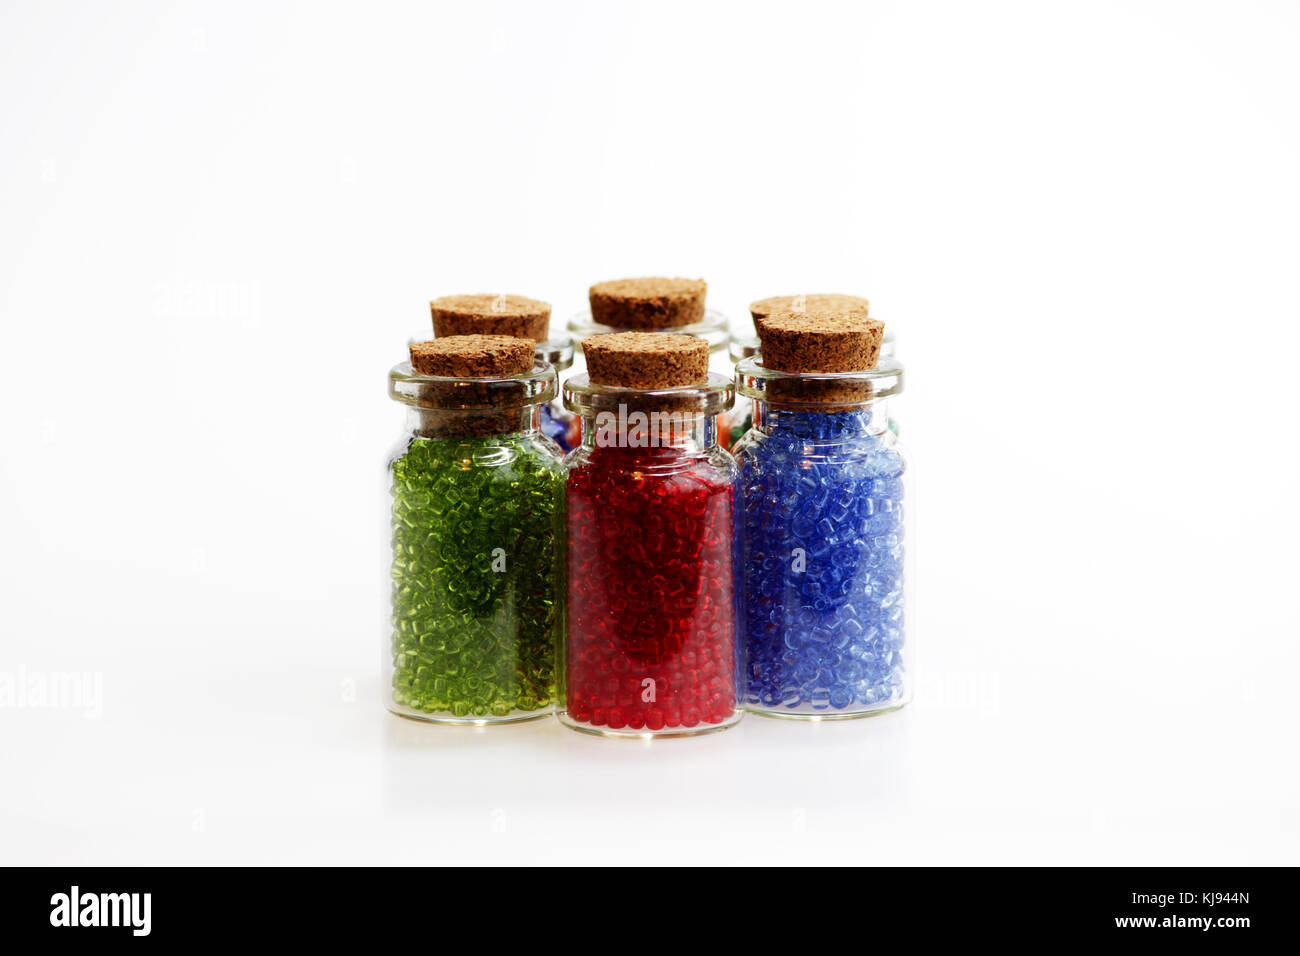 Six tiny glass bottles with a cork stopper, filled with a rainbow colours of beads, on a white background. Stock Photo